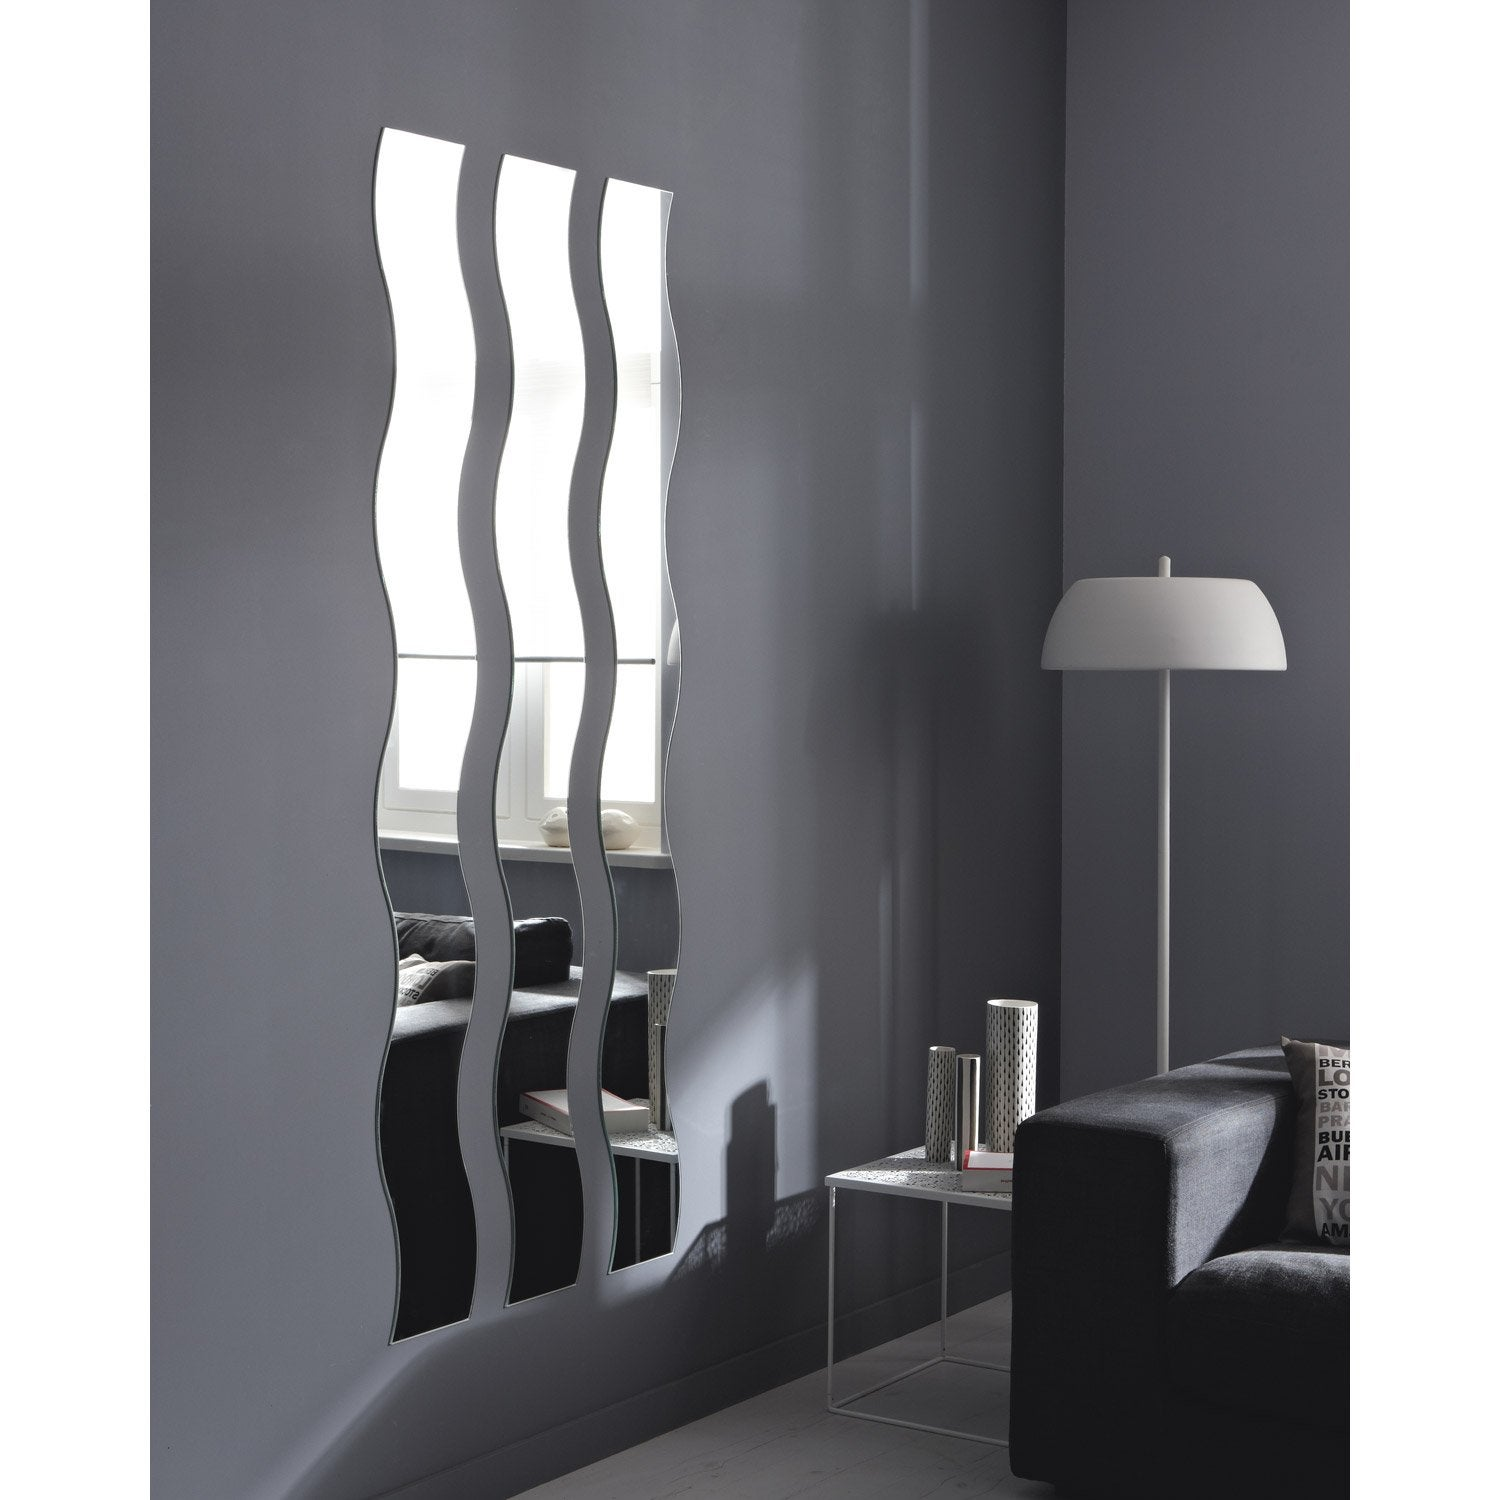 miroir non lumineux d coup vague x cm vague leroy merlin. Black Bedroom Furniture Sets. Home Design Ideas